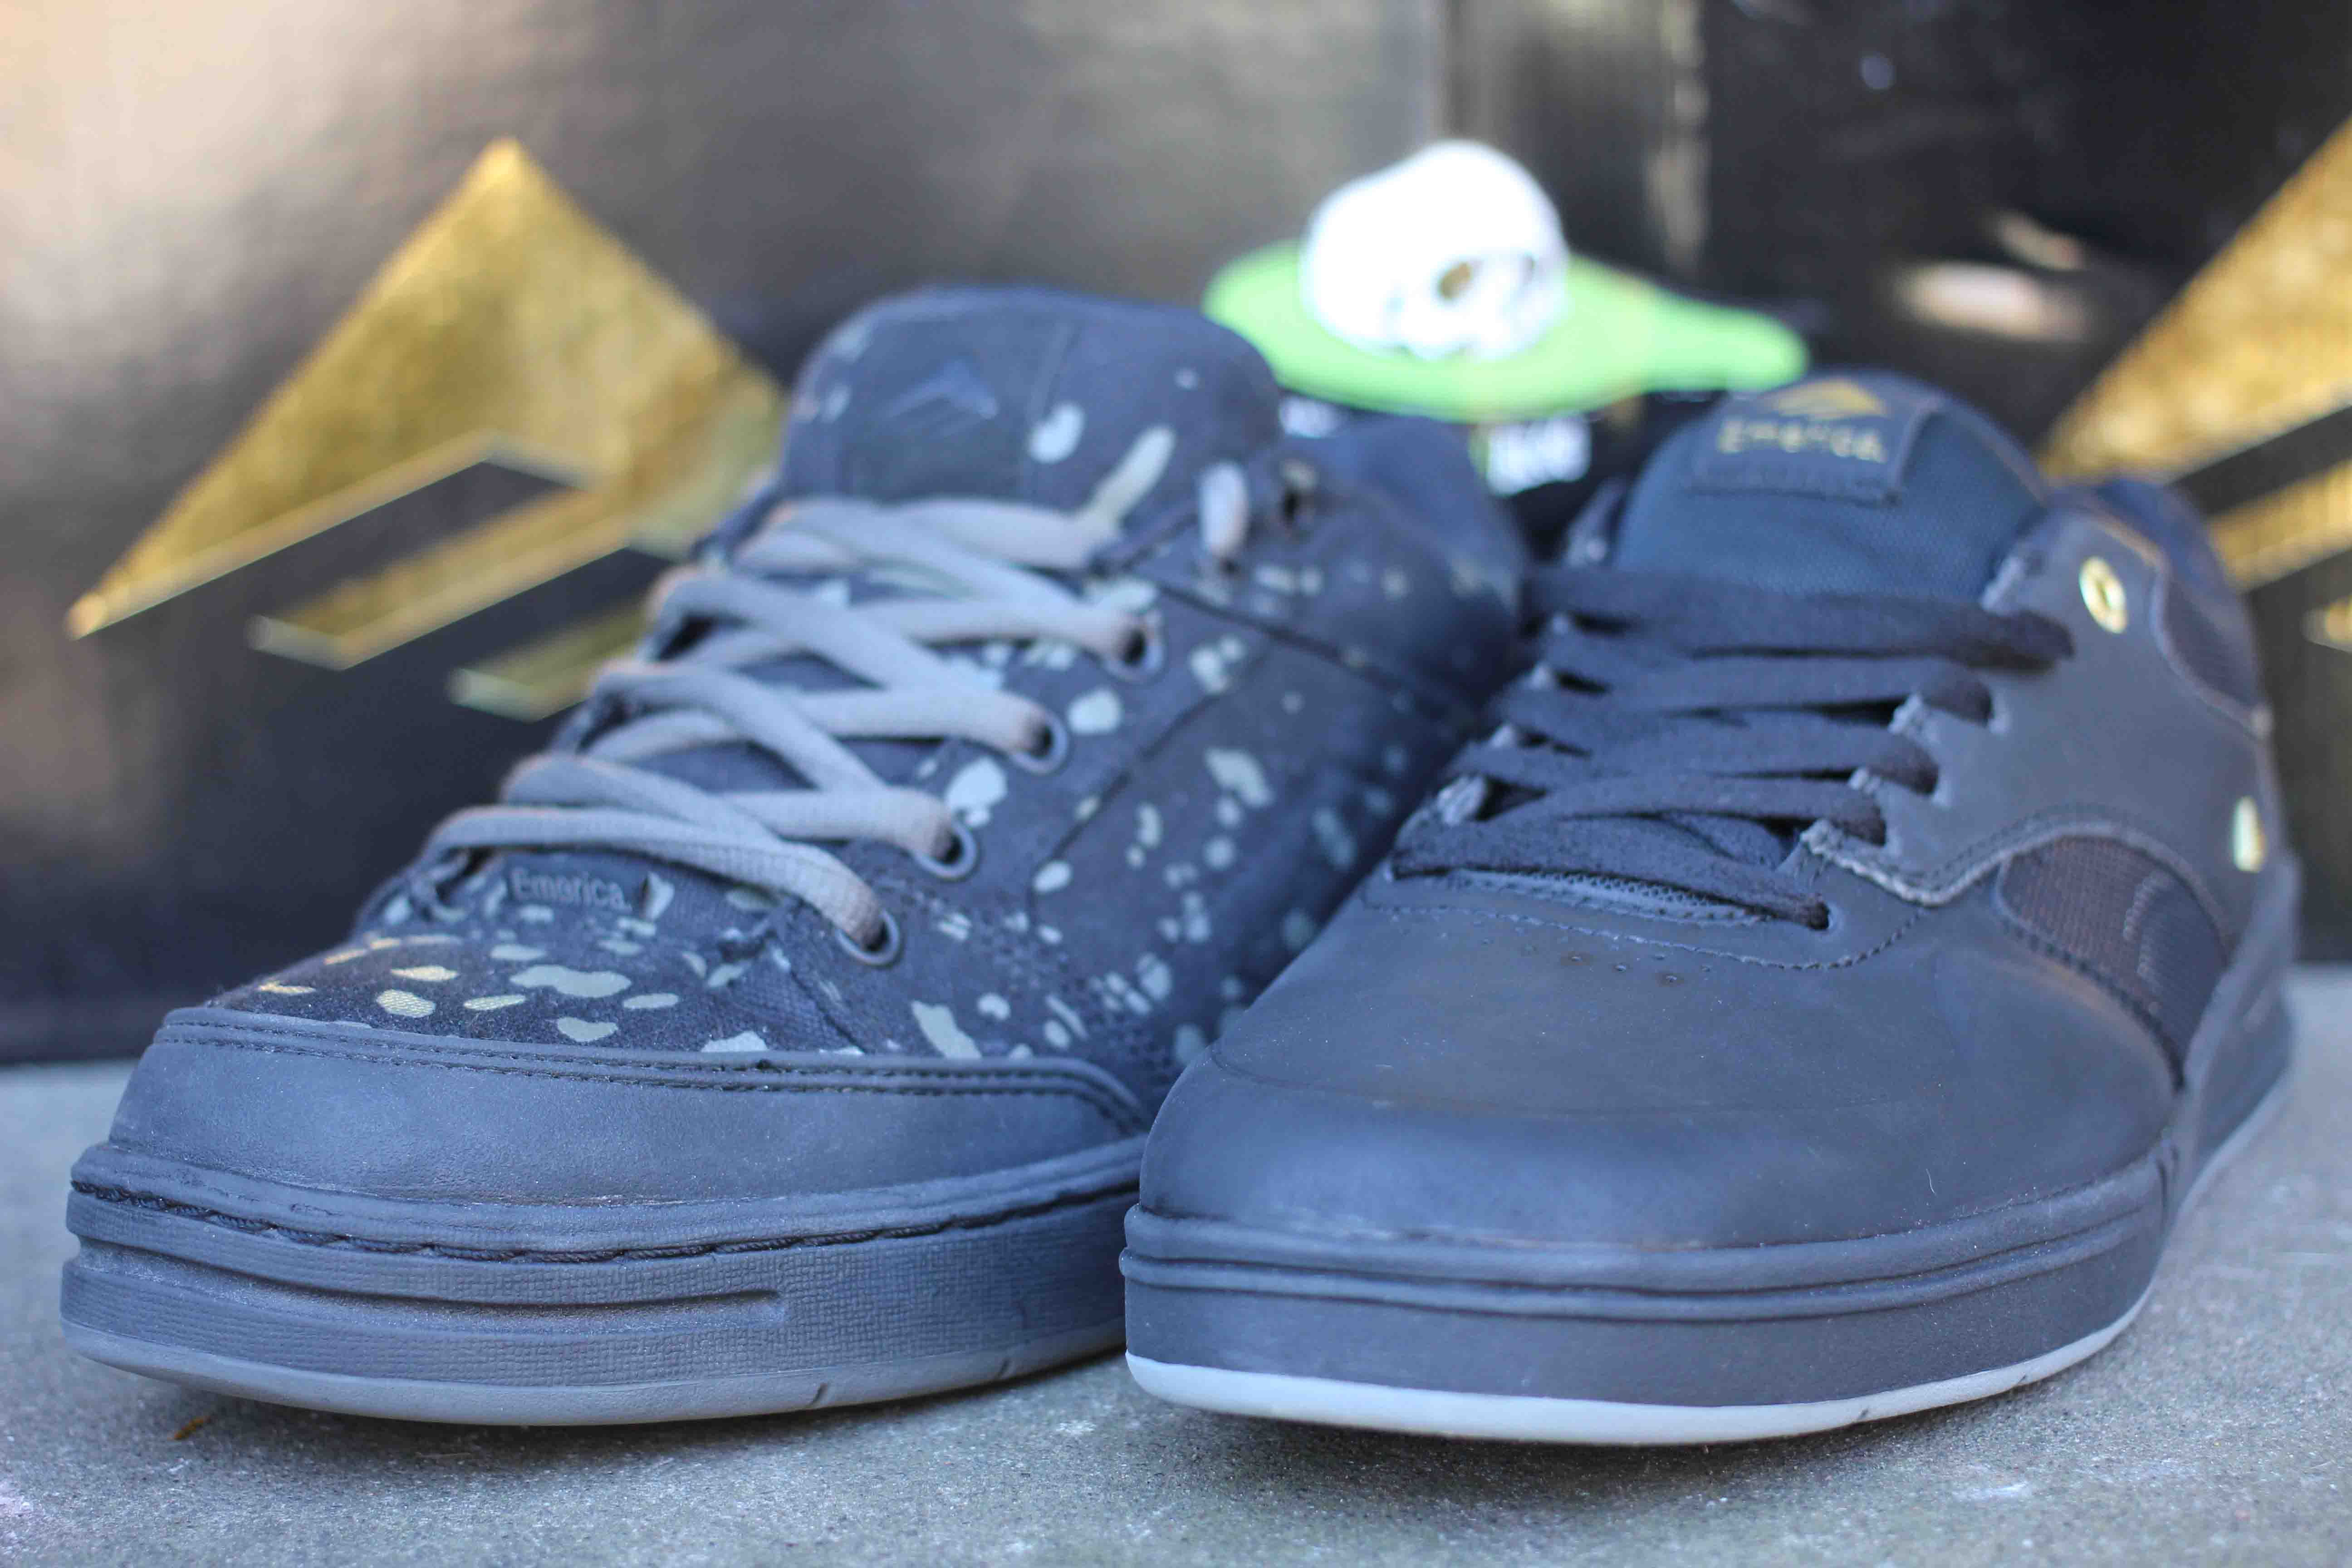 Emerica Heritic 3 and The Heritic X Ed Templeton Vegan Skateboard Shoes